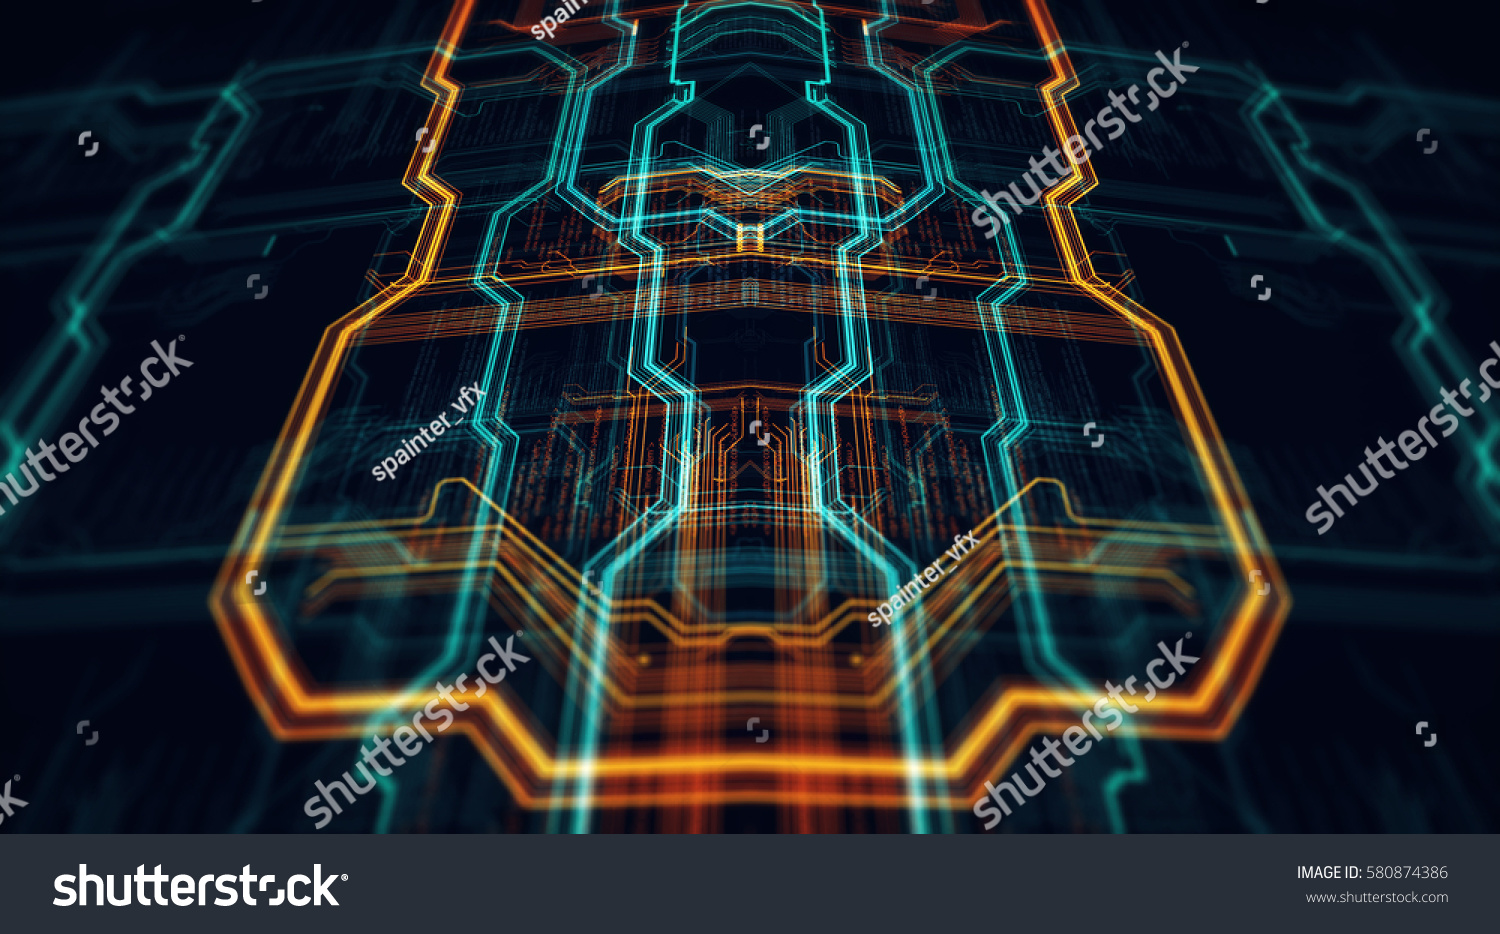 3 D Illustration Circuit Board Futuristic Server Stock Series 3d Animated Model Parallel Code Processing Orange Green Blue Technology